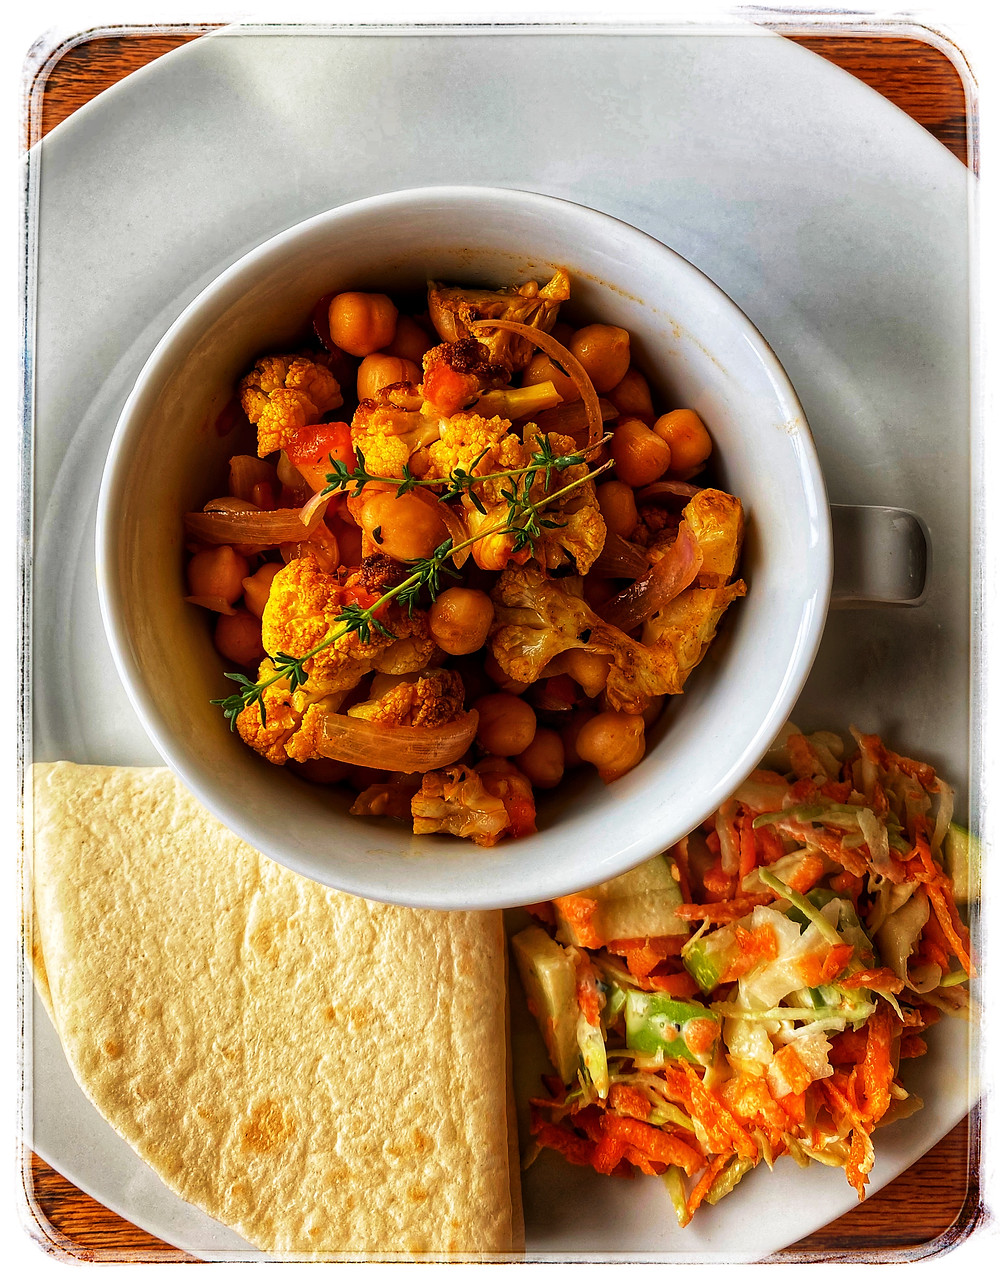 A meal of spicy baked Cauliflower with chickpea stew, Coleslaw and tortillas. Image credit: Nicole Cullinan @wellnessplaceint